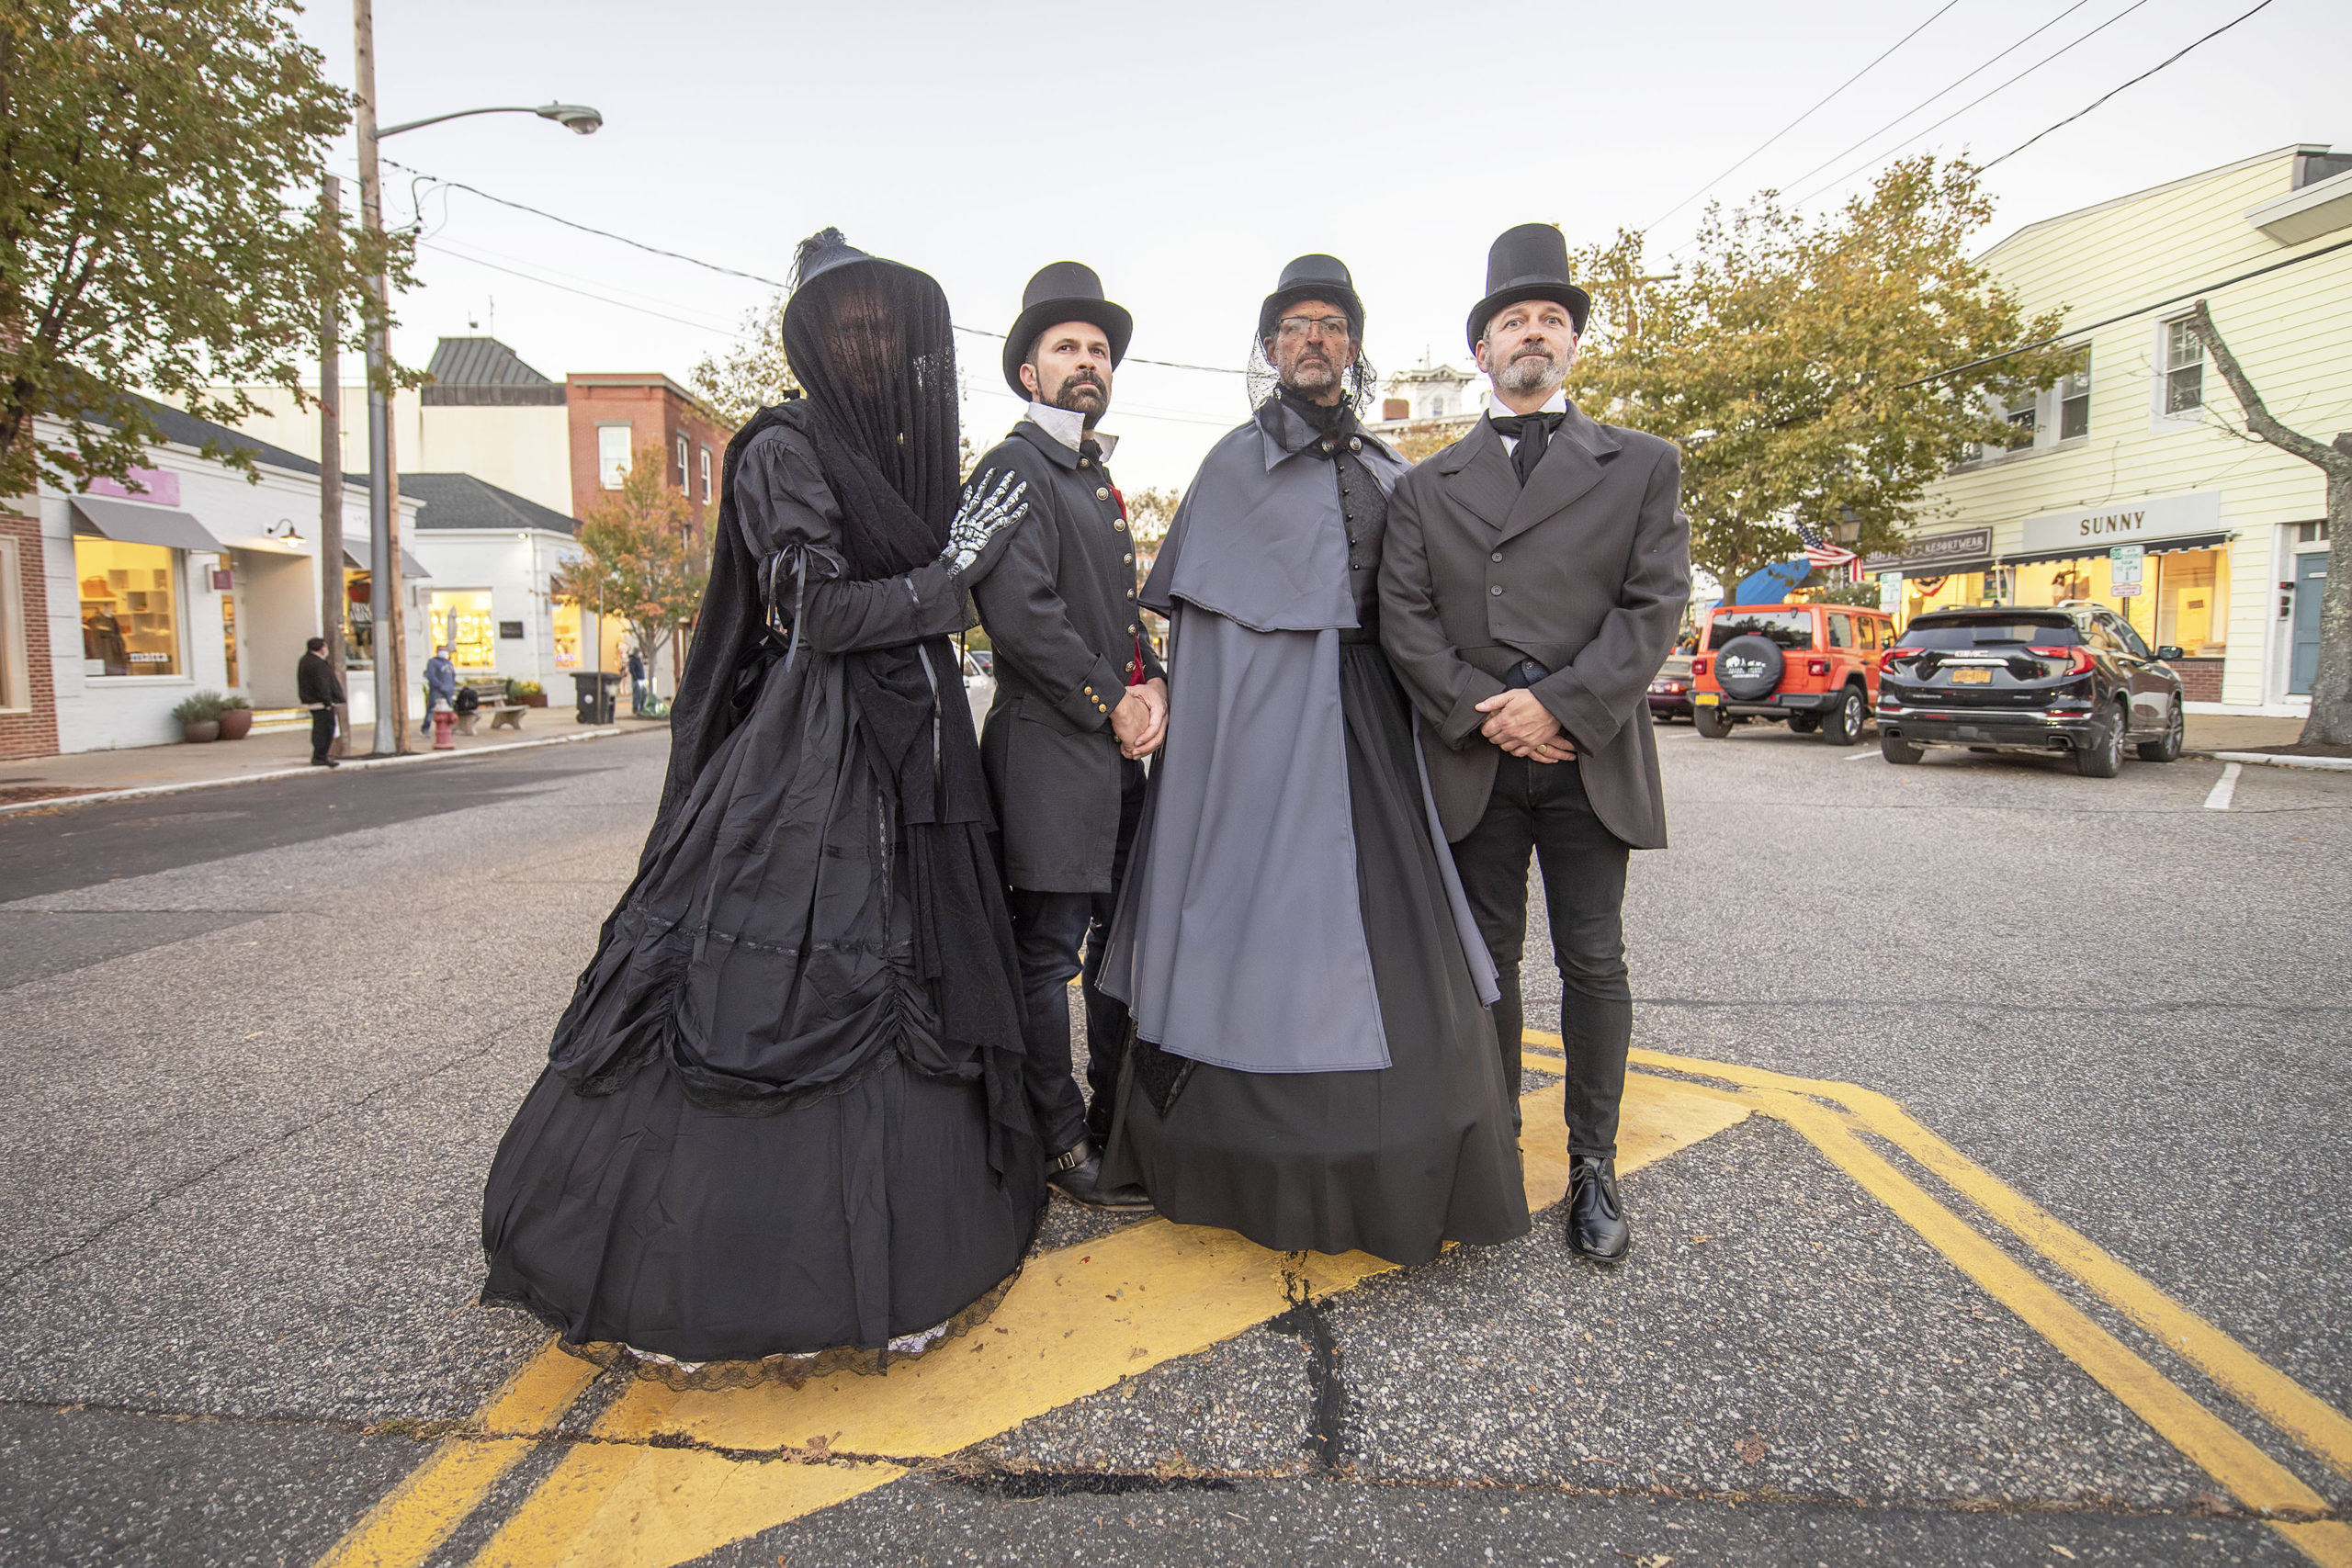 Butch Whitfield, Lindsay Denman, Mike Lambert and Jeremy Leffler made an elegant appearance on Main Street in Sag Harbor on Halloween afternoon.  MICHAEL HELLER